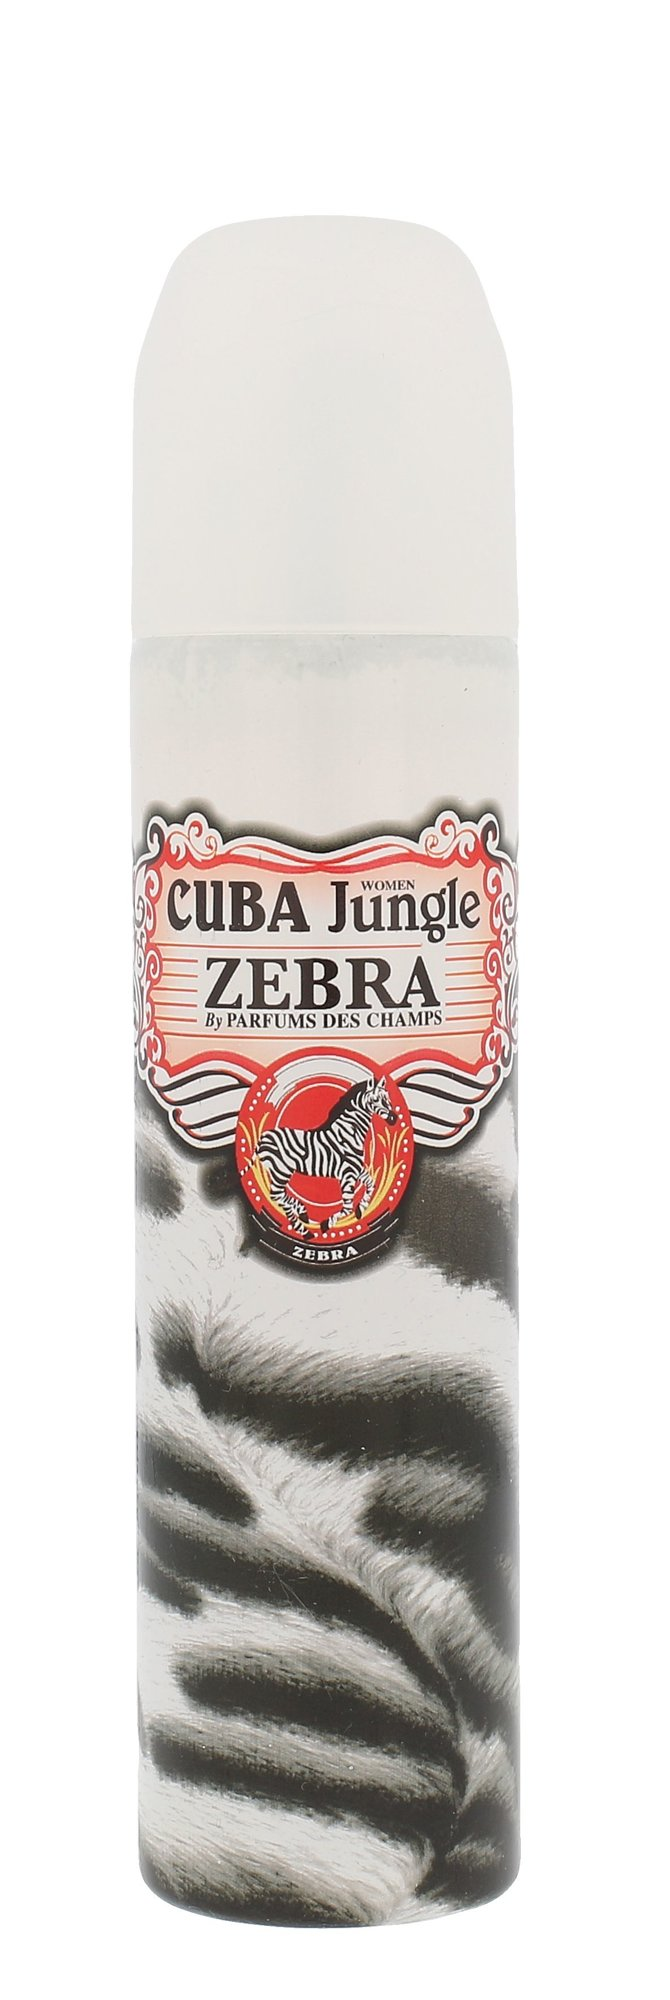 Cuba Jungle Zebra EDP 100ml